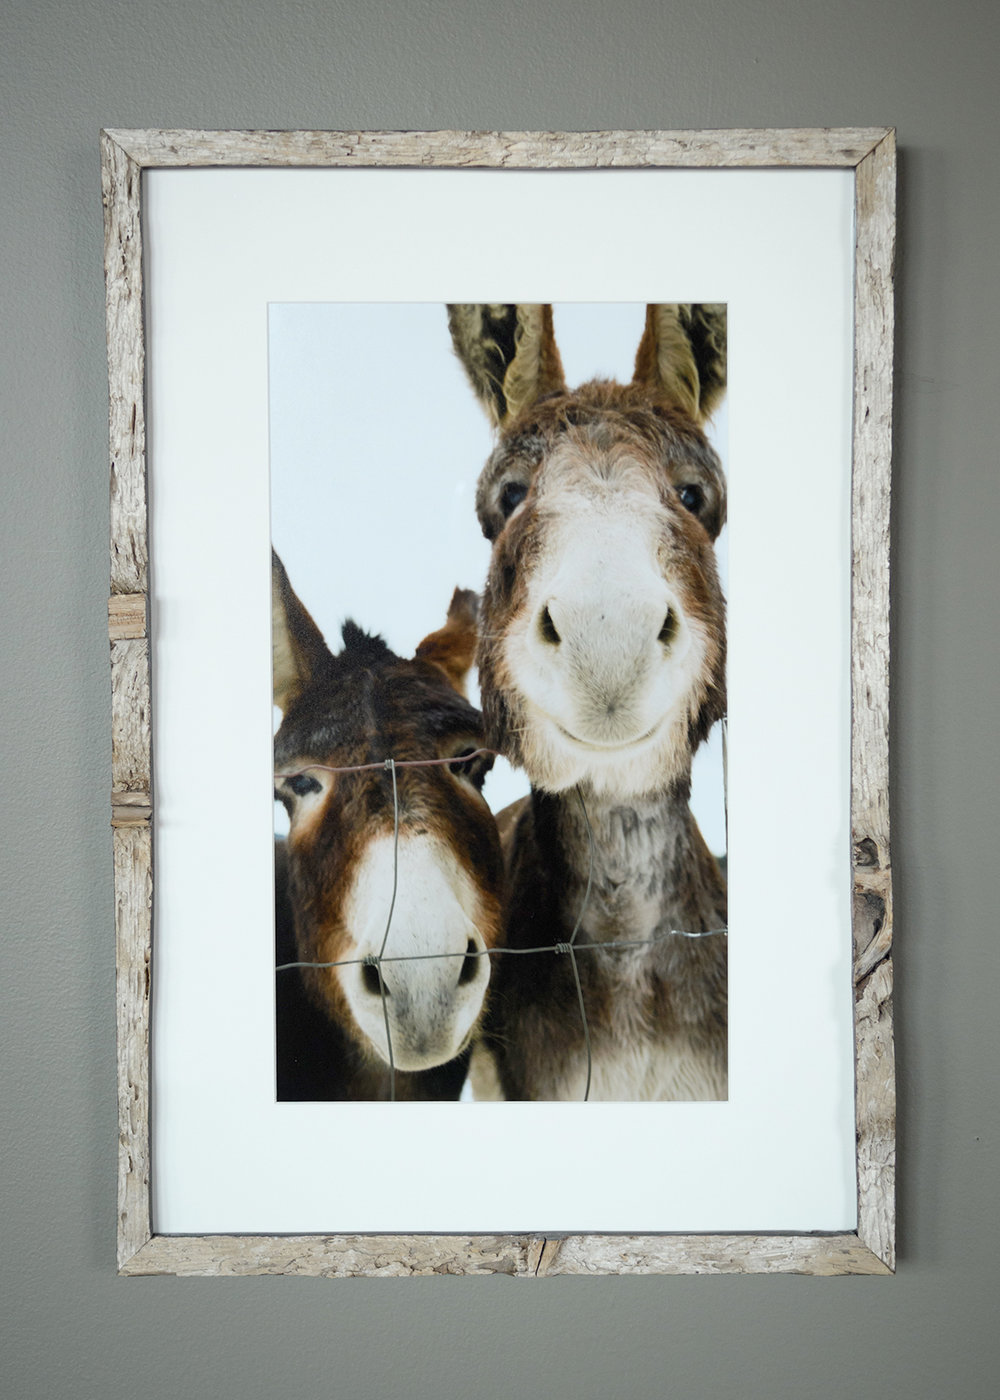 Two Donkeys - North Star Sheep Farm, Windham - (SOLD)